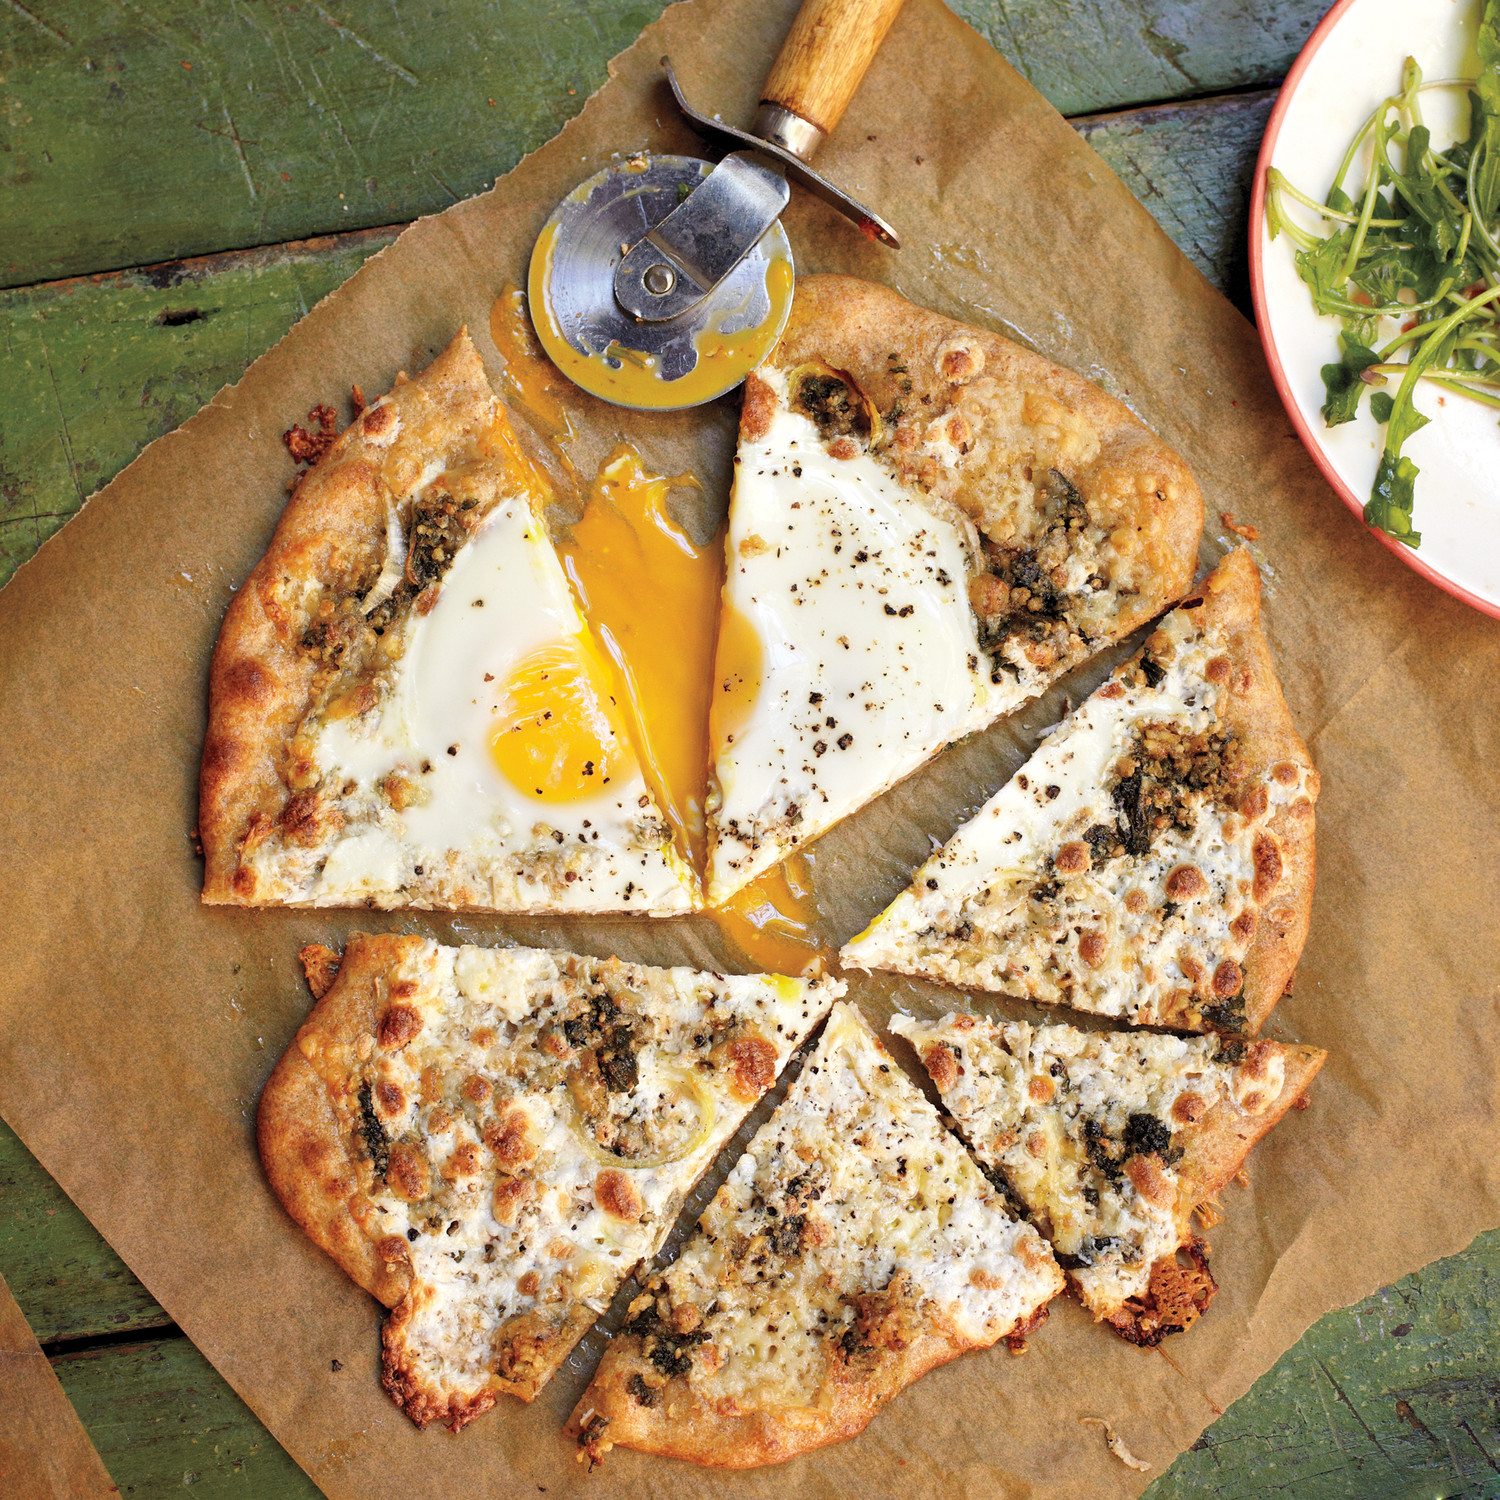 Pizza with a Sunny Side Up Egg and Herb Garden Pesto